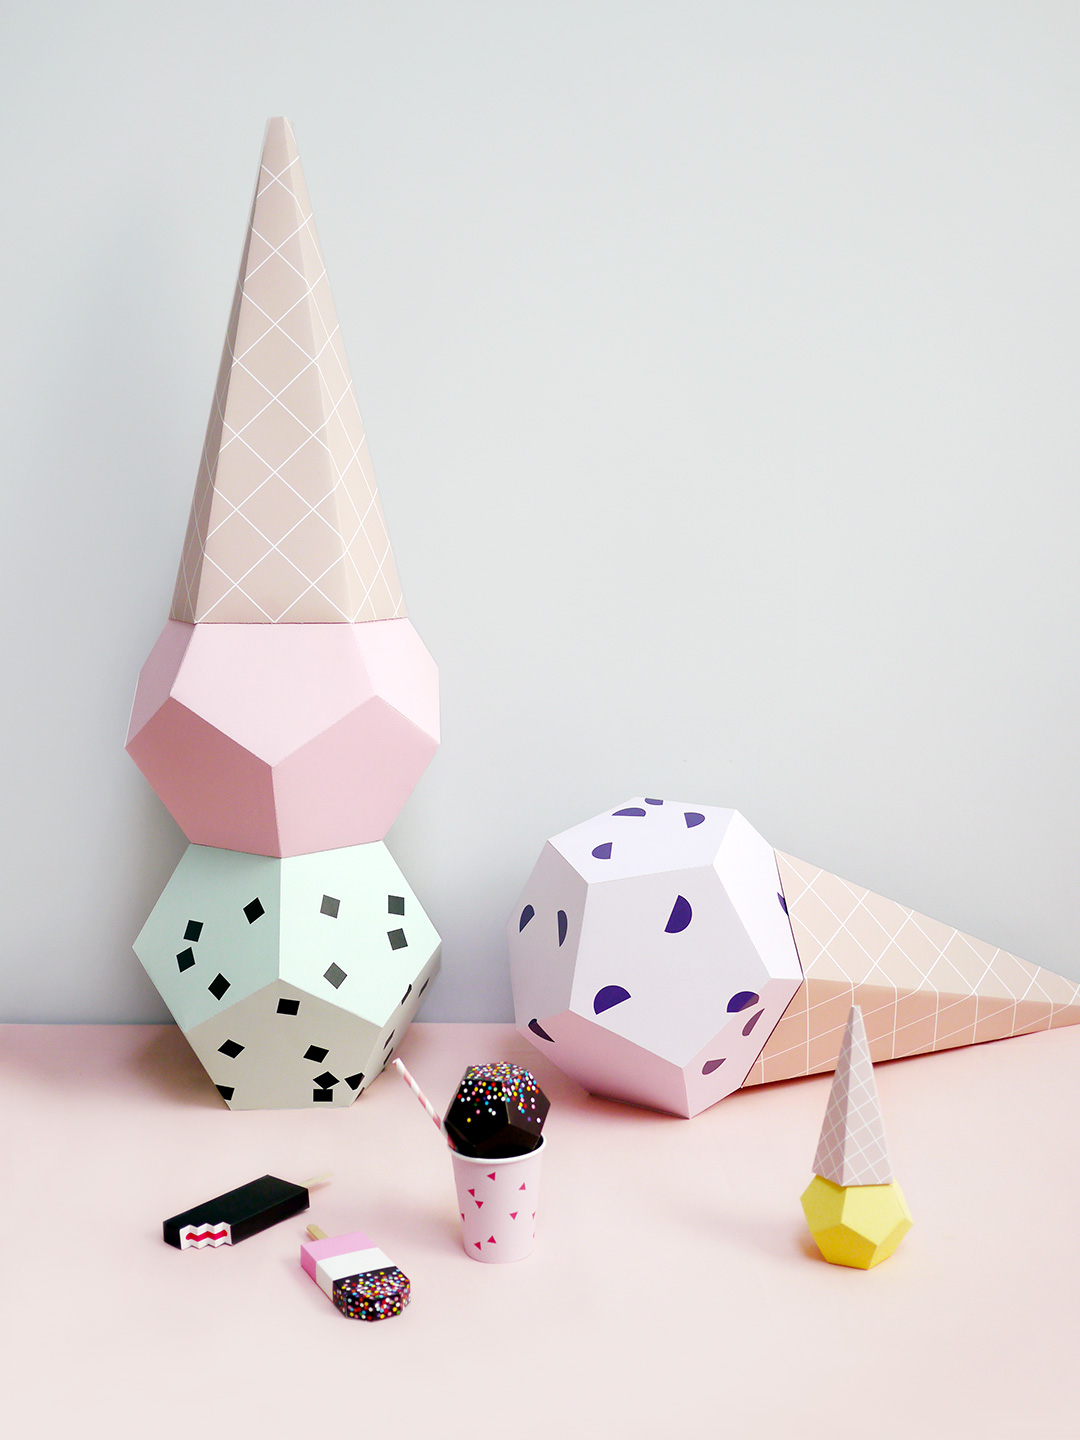 Giant Ice Cream Paper Sculpture Kit - Mint Choc Chip